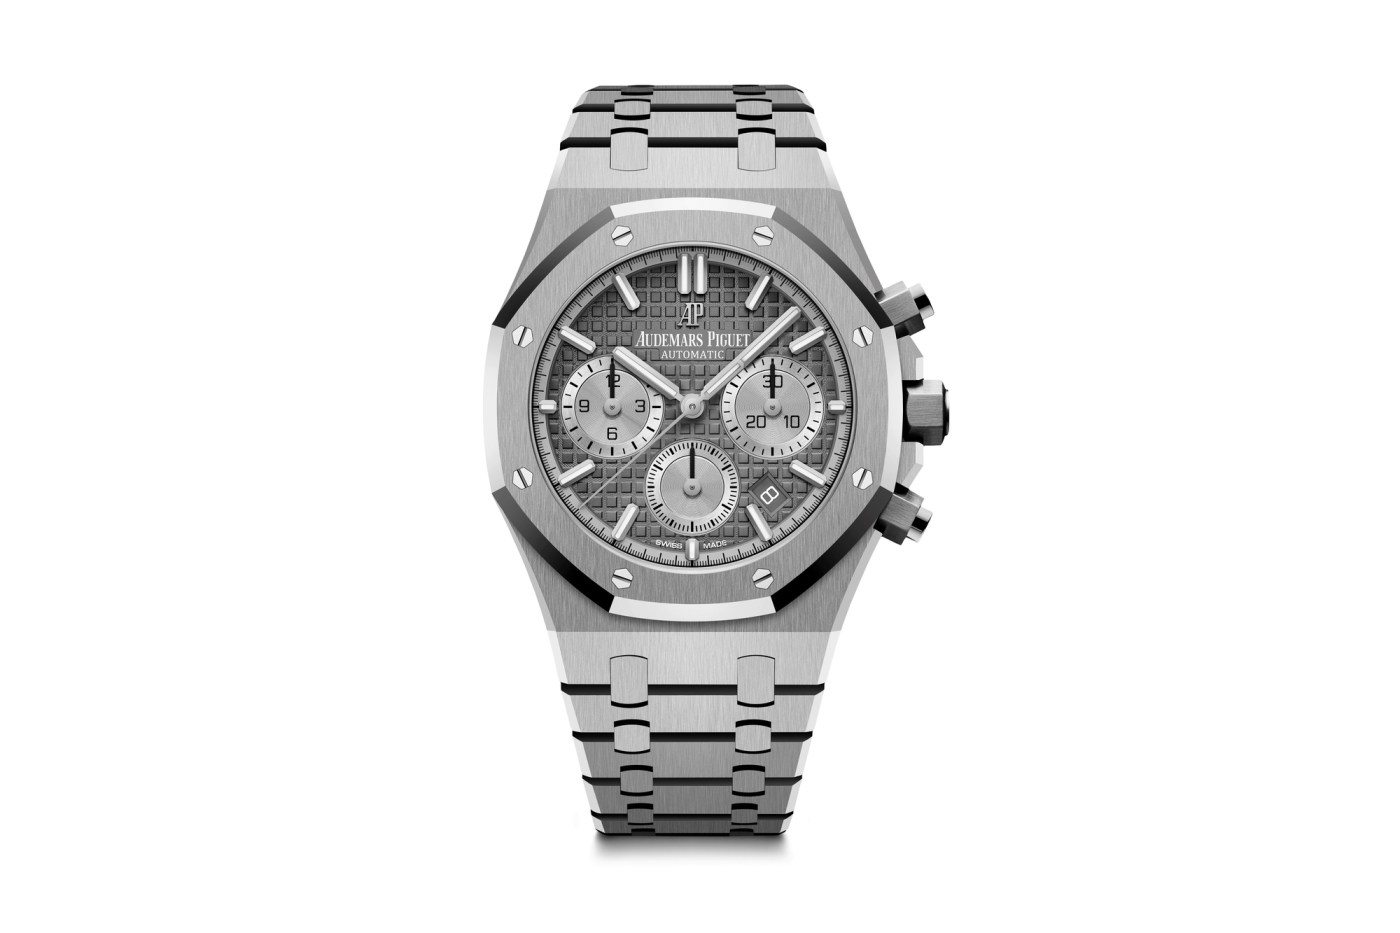 Audemars Piguet Royal Oak-Chronograph 38mm in steel with Ruthenium dial